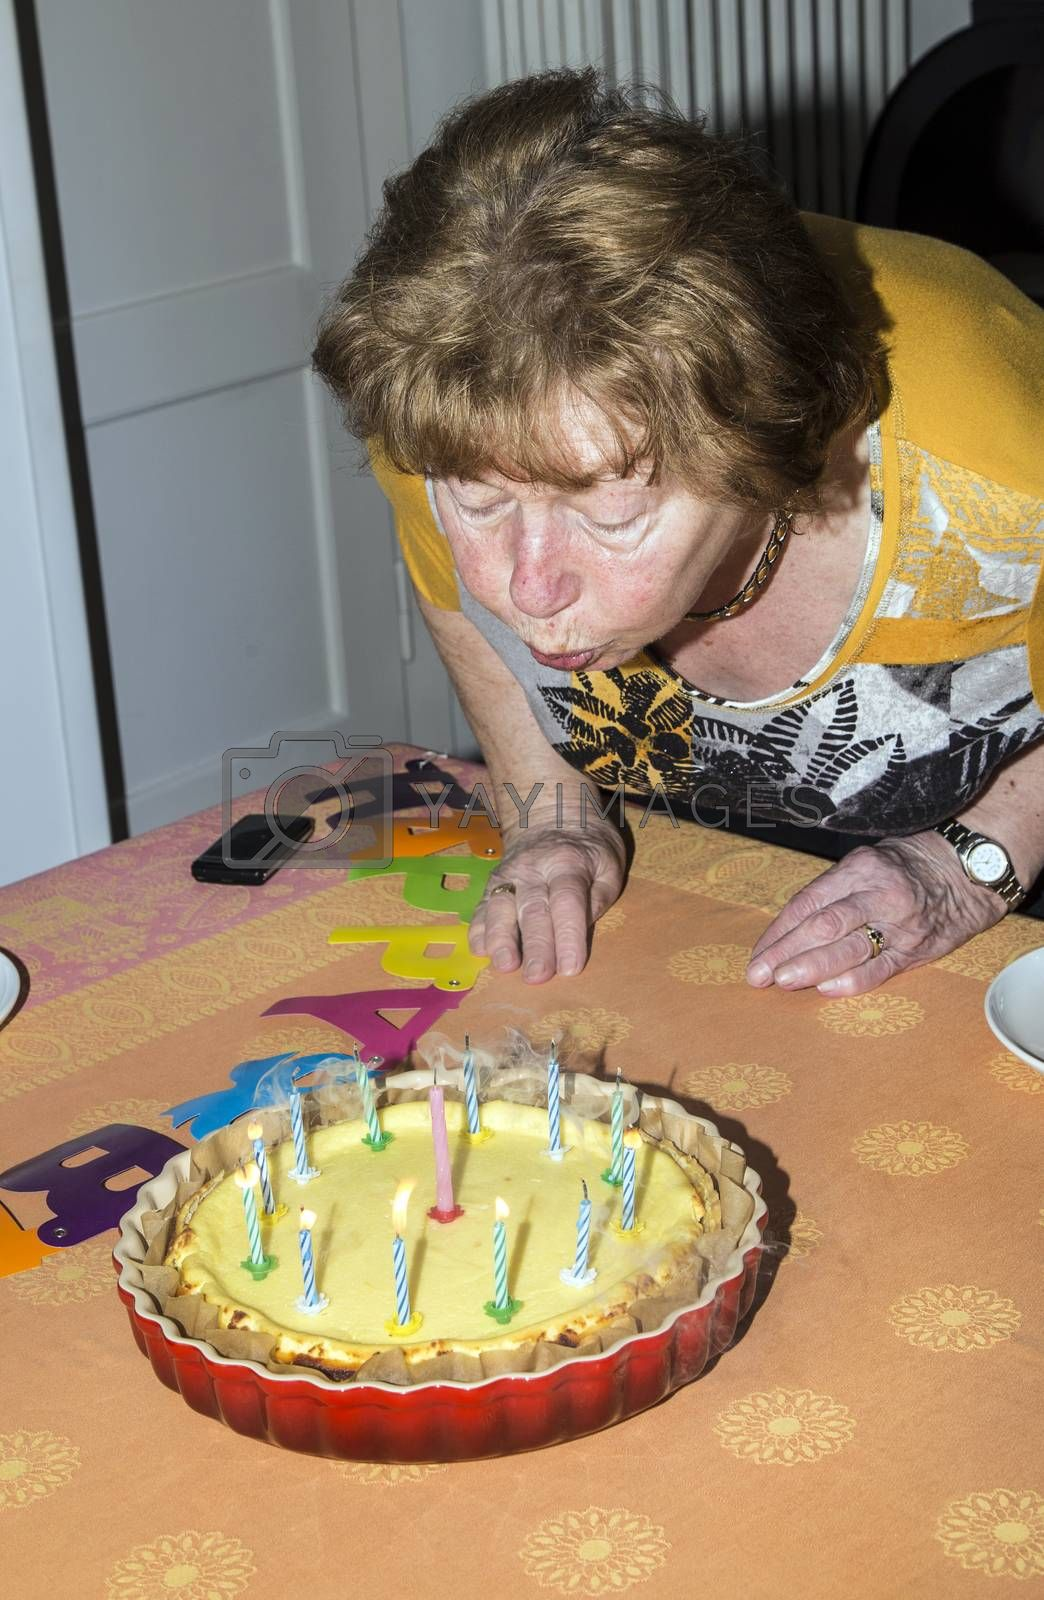 A senior female blows out candles on a cake. Ideal for birthday, anniversary or any other celebration inference.